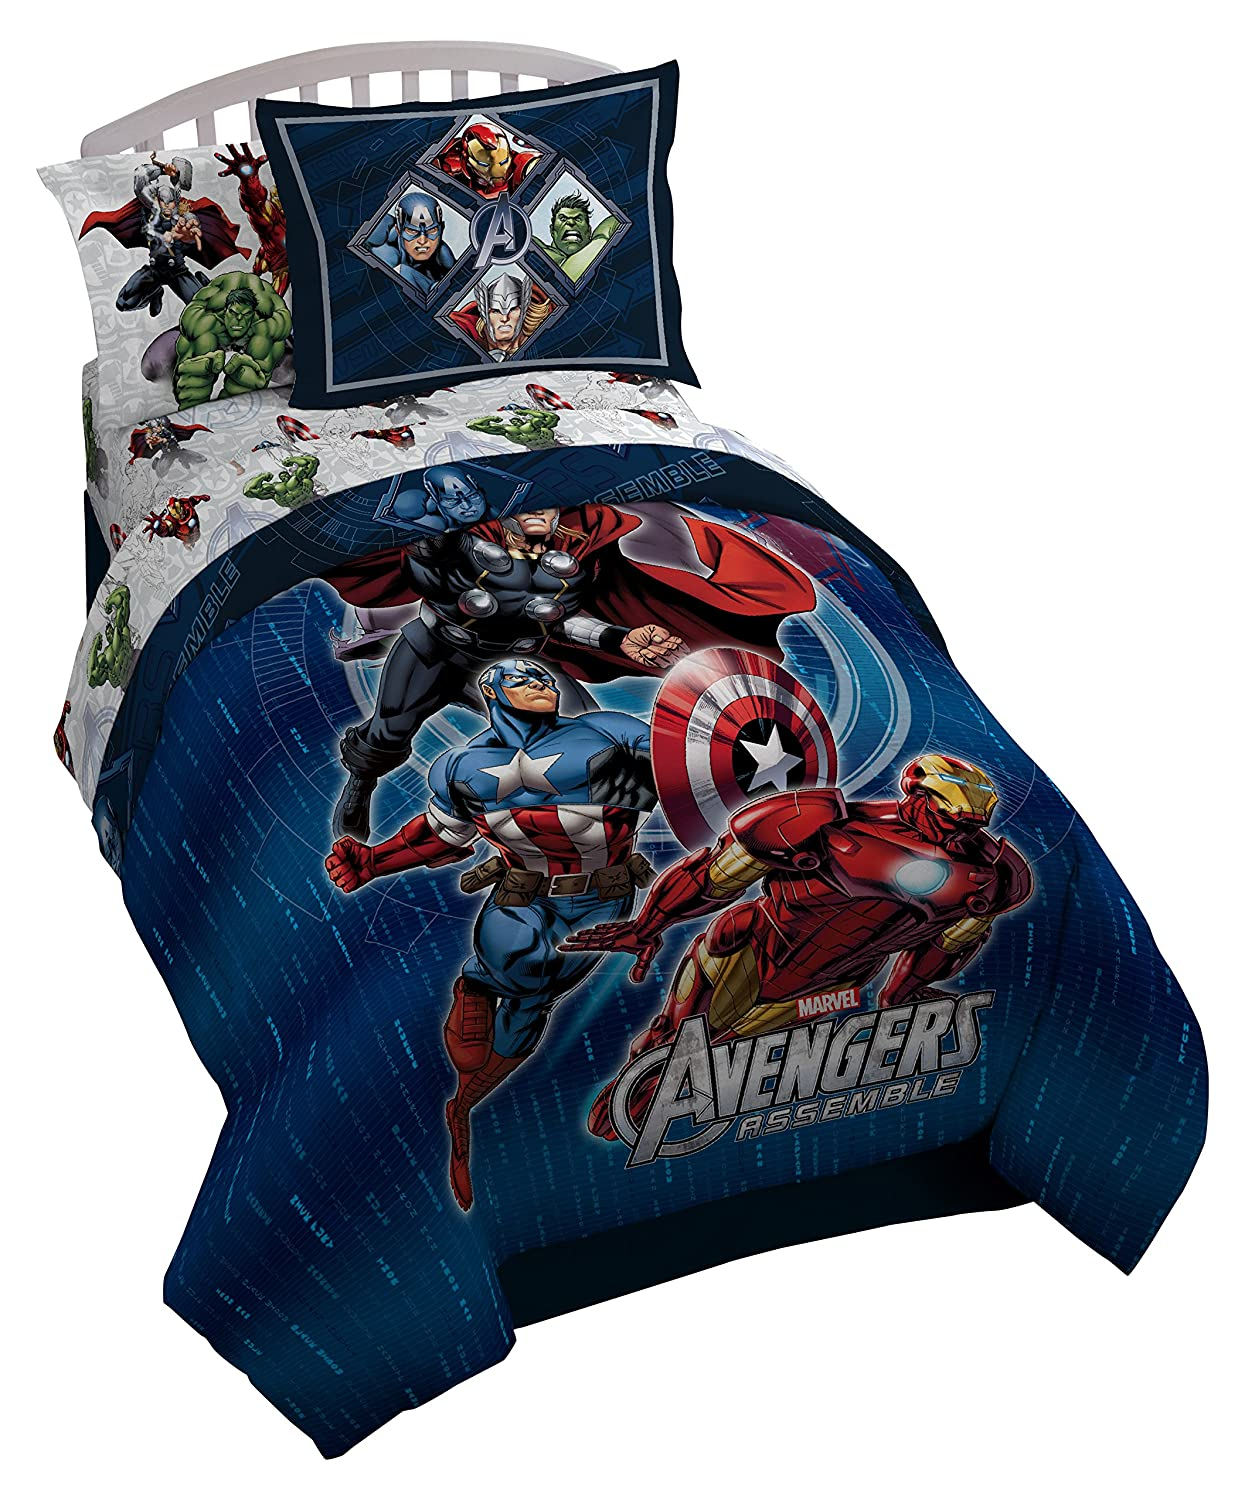 Marvel Avengers Assemble Full Reversible Comforter Set